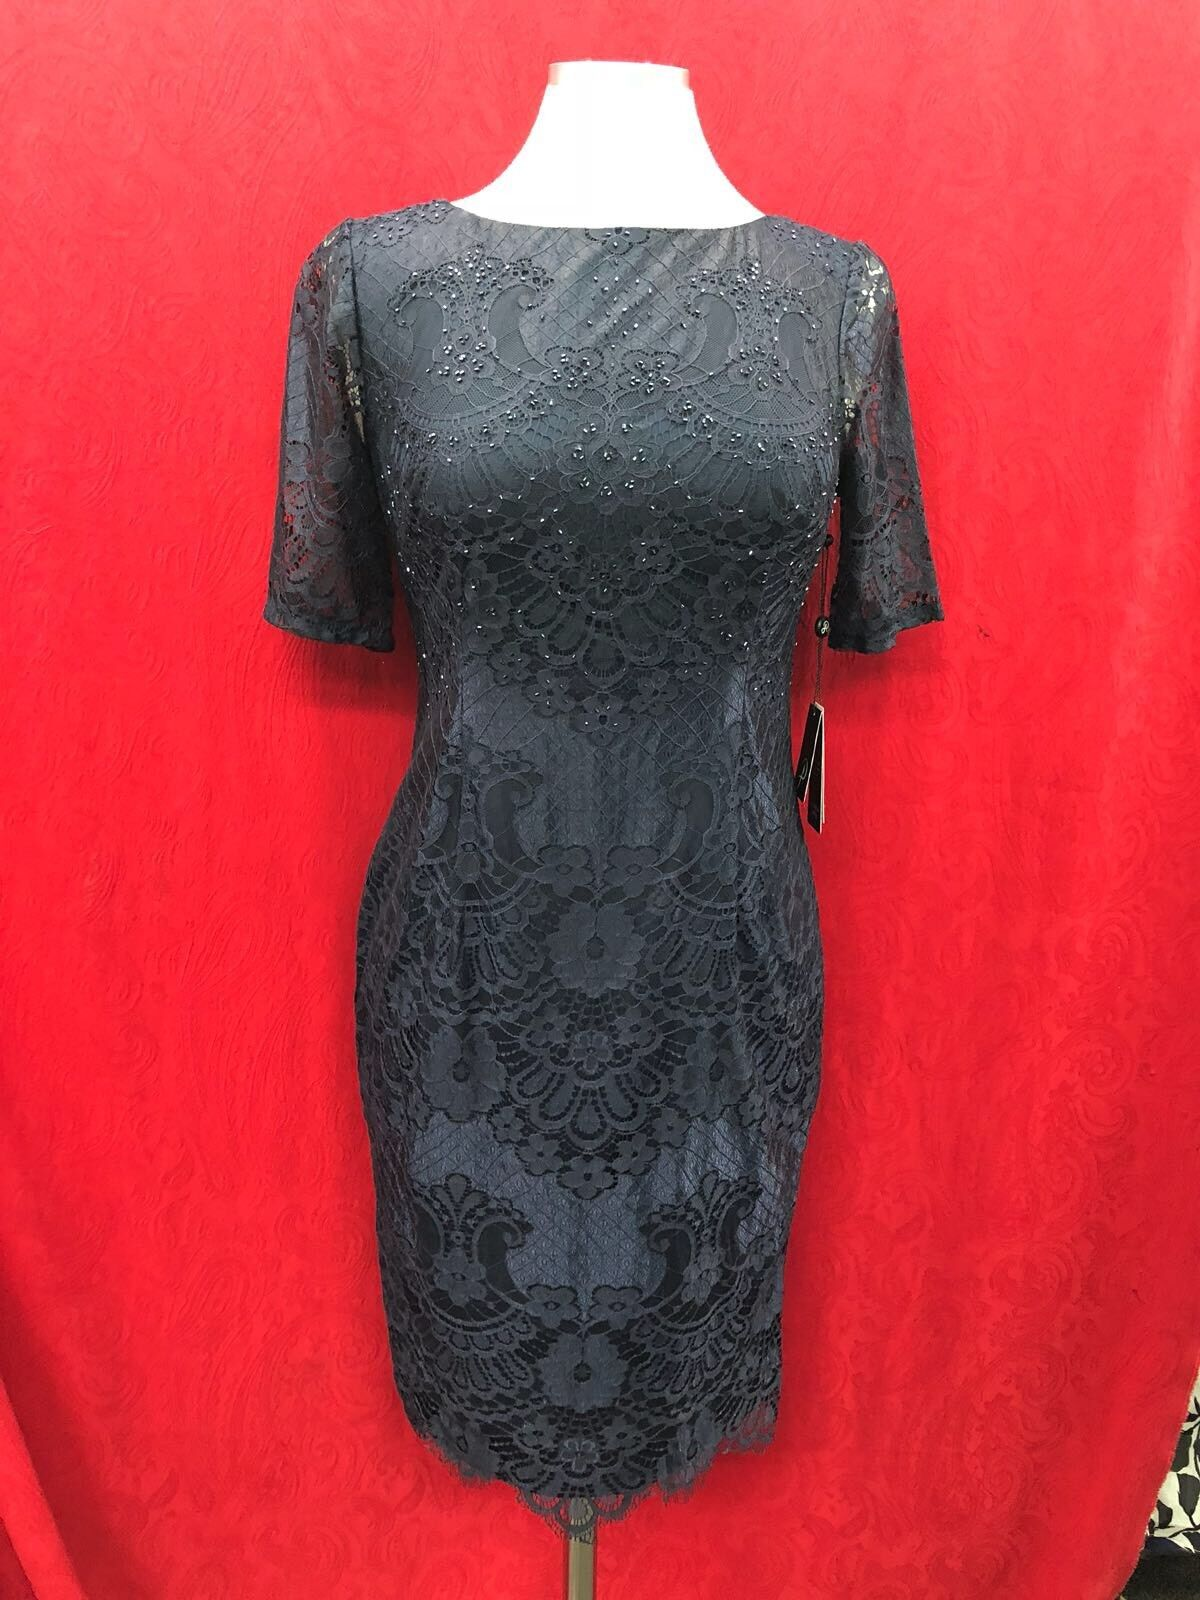 ADRIANNA PAPELL DRESS NAVY SIZE 4 LENGTH 37' RETAIL 249 NEW WITH TAG LINED